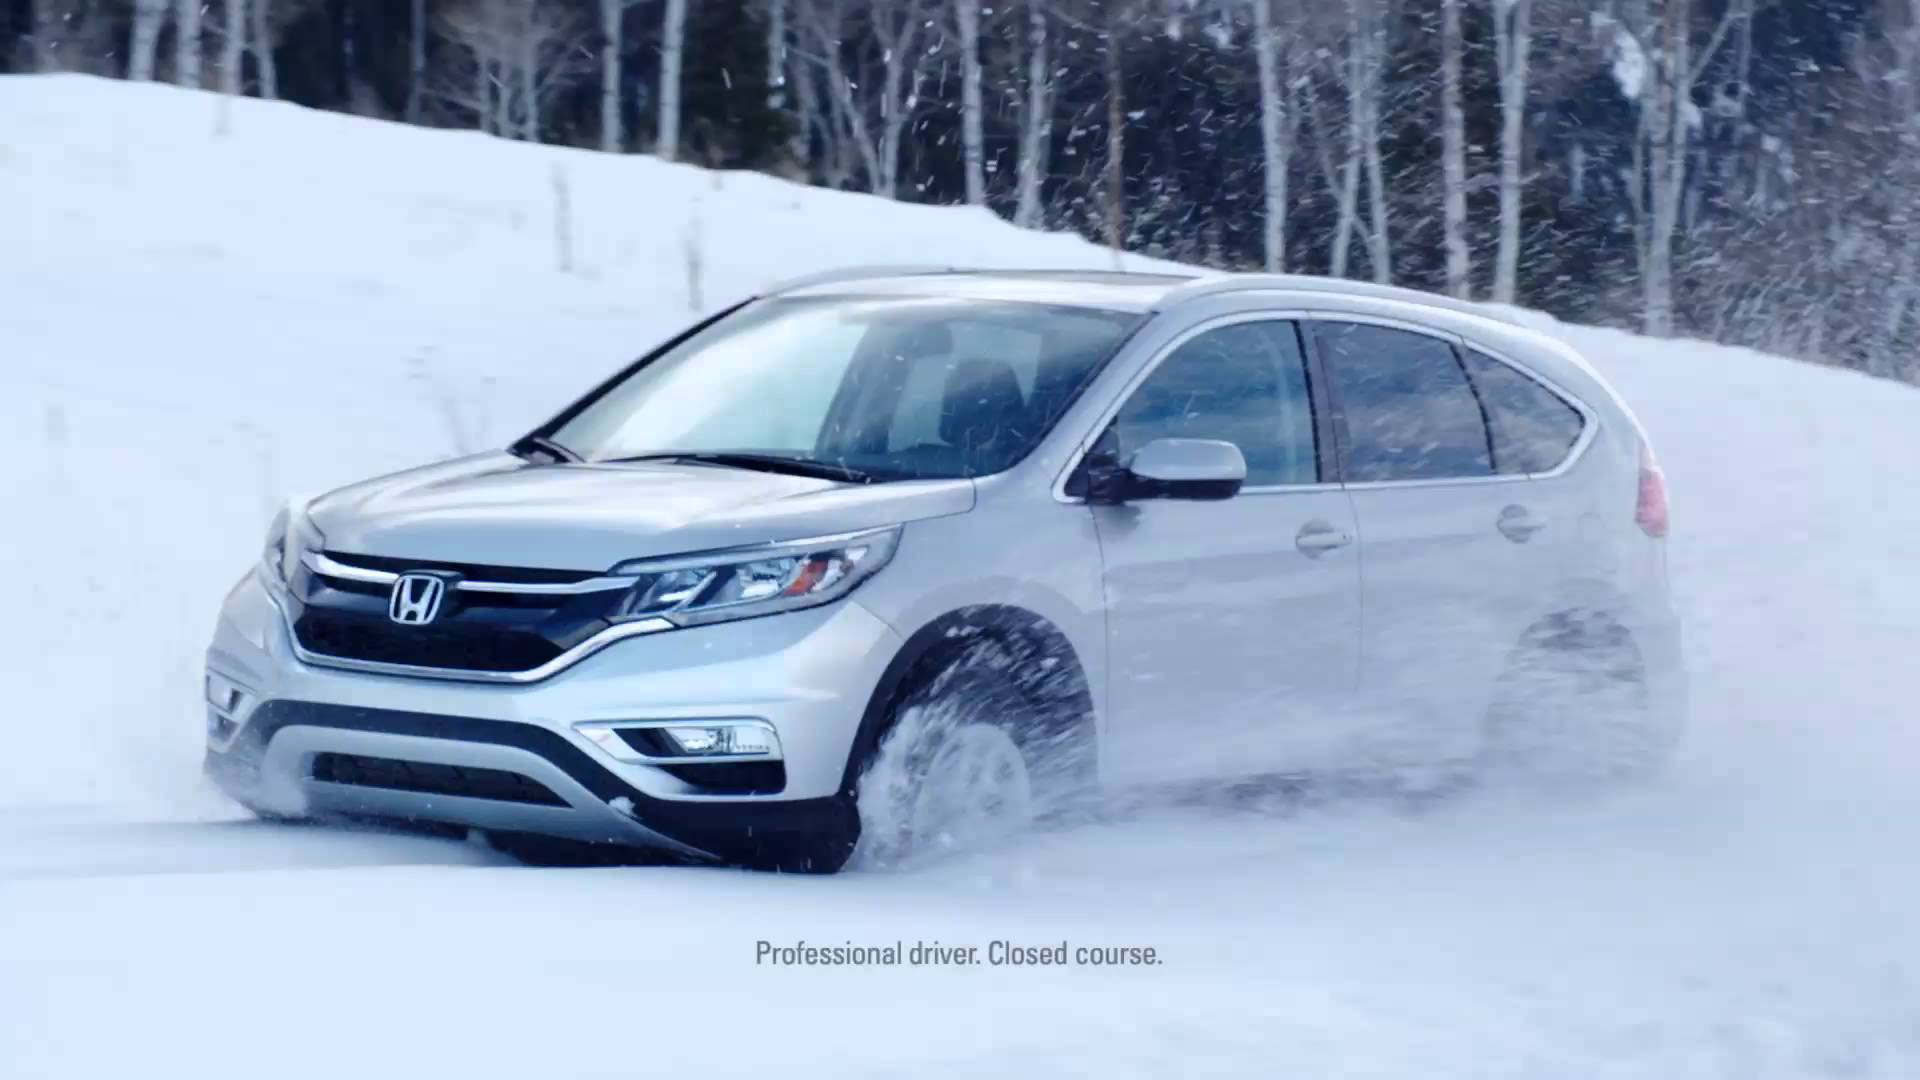 hight resolution of winter driving tips from yonkers honda